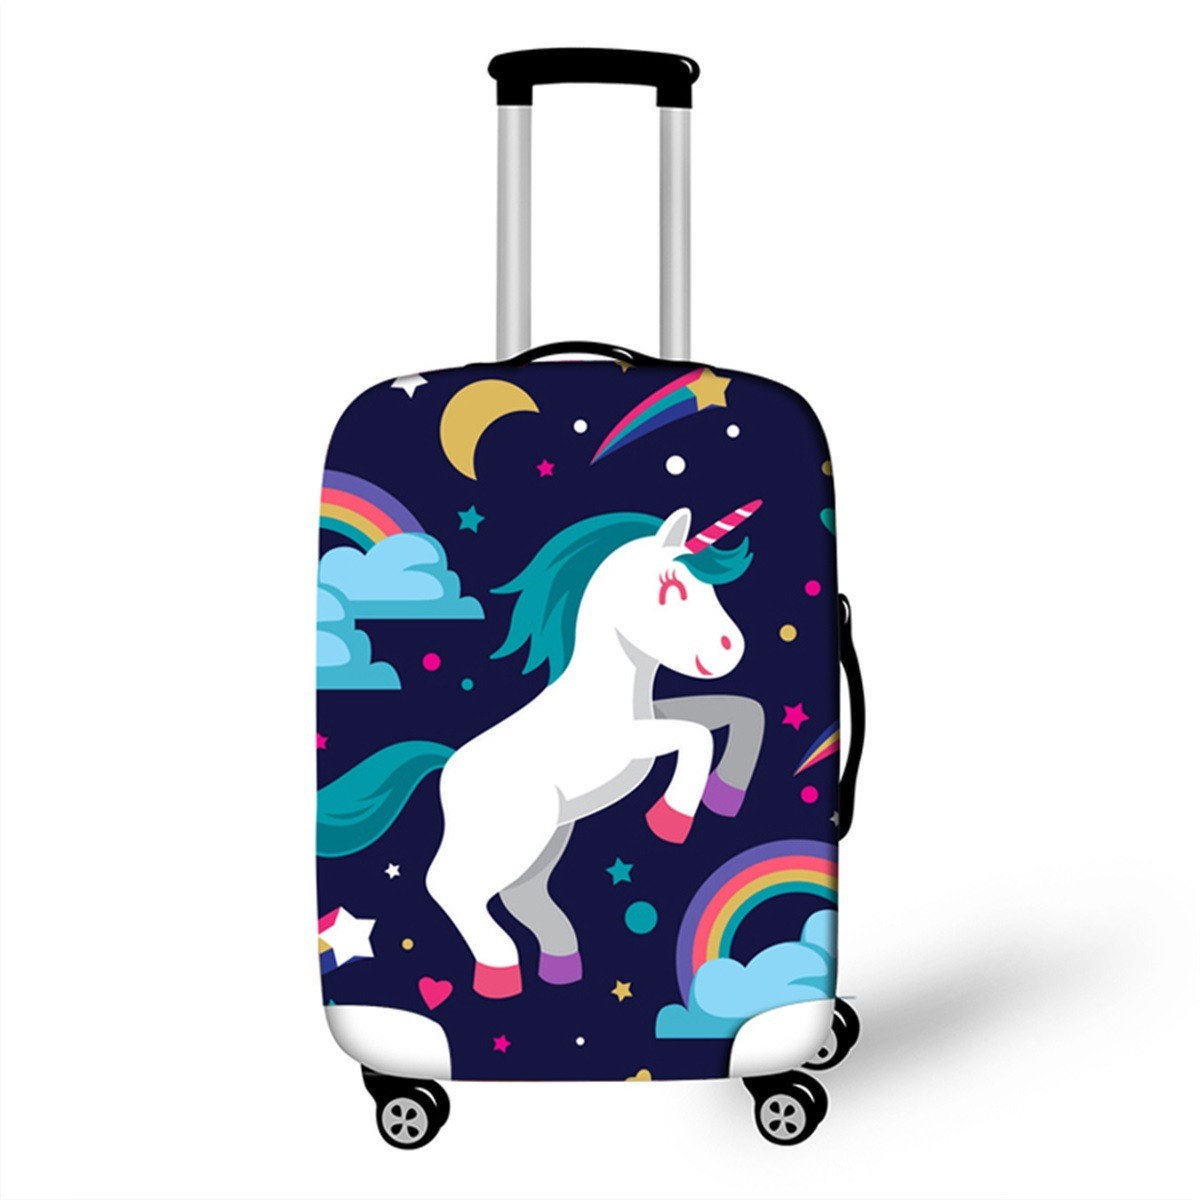 3D Unicorn Luggage Cover Cartoon Suitcase Dust Covers Kids Trolley Baggage Bag Protection Case Travel Accessories For 18-32 Inch